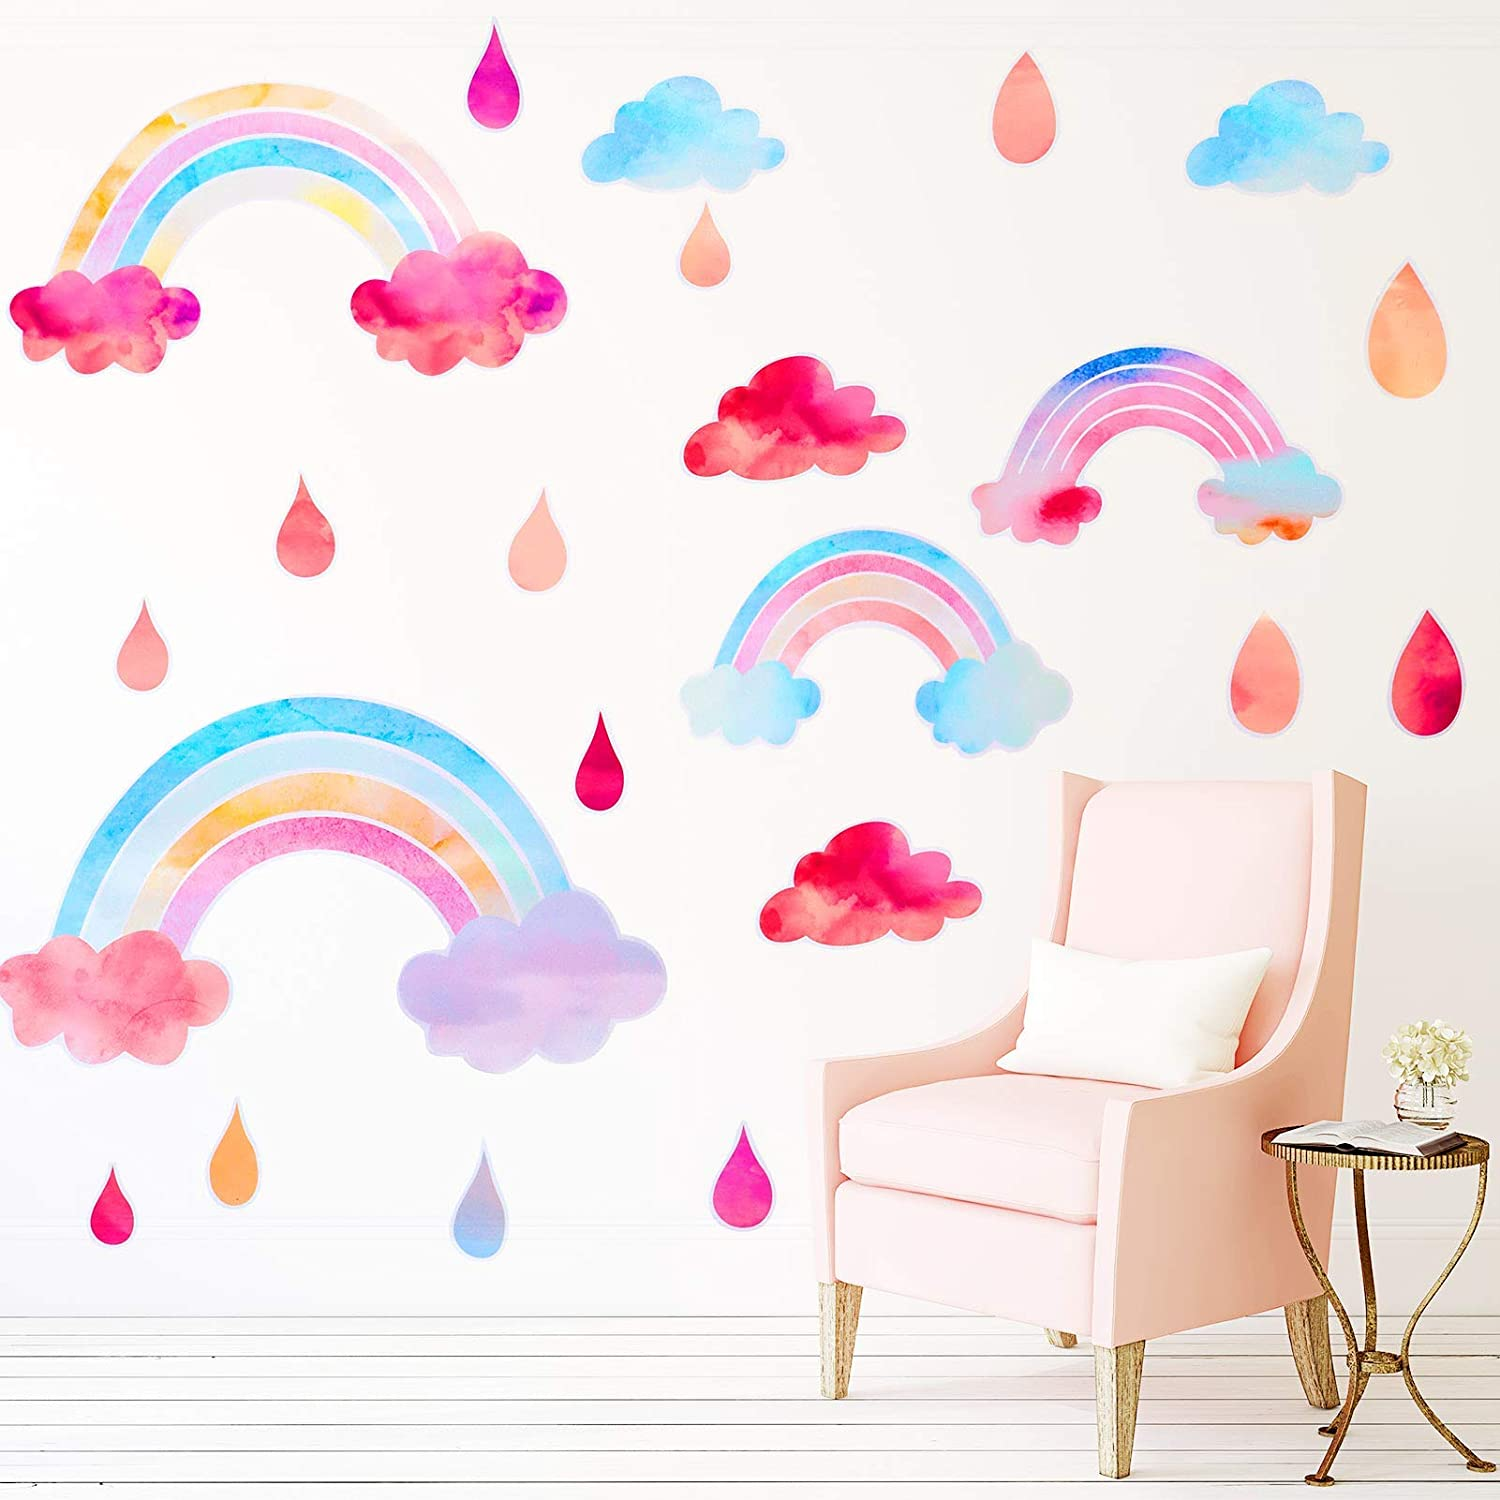 BOWINR Rainbow Wall Decals Cloud Wall Decals Watercolor Raindrop Wall Stickers Peel&Stick Wall Sticker Kids Decals for Walls